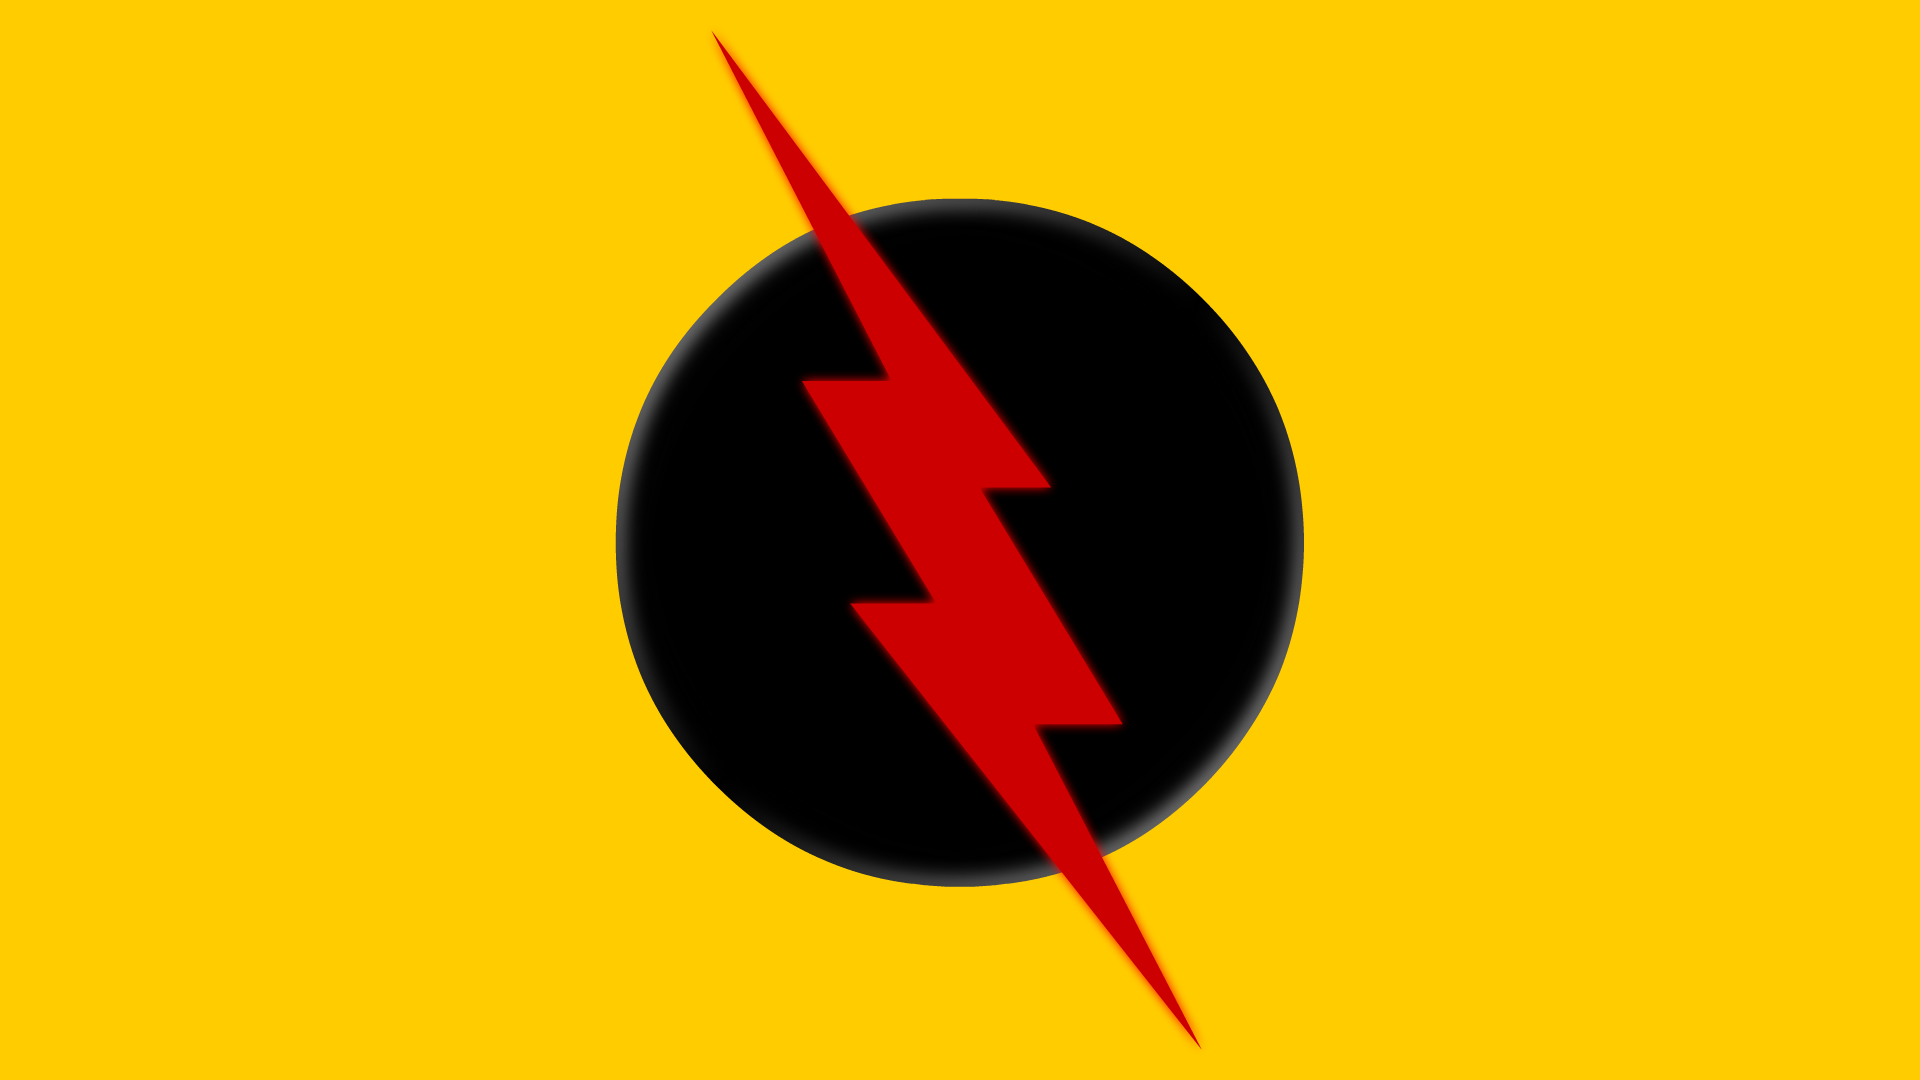 Reverse Flash Symbol by Yurtigo 1920x1080